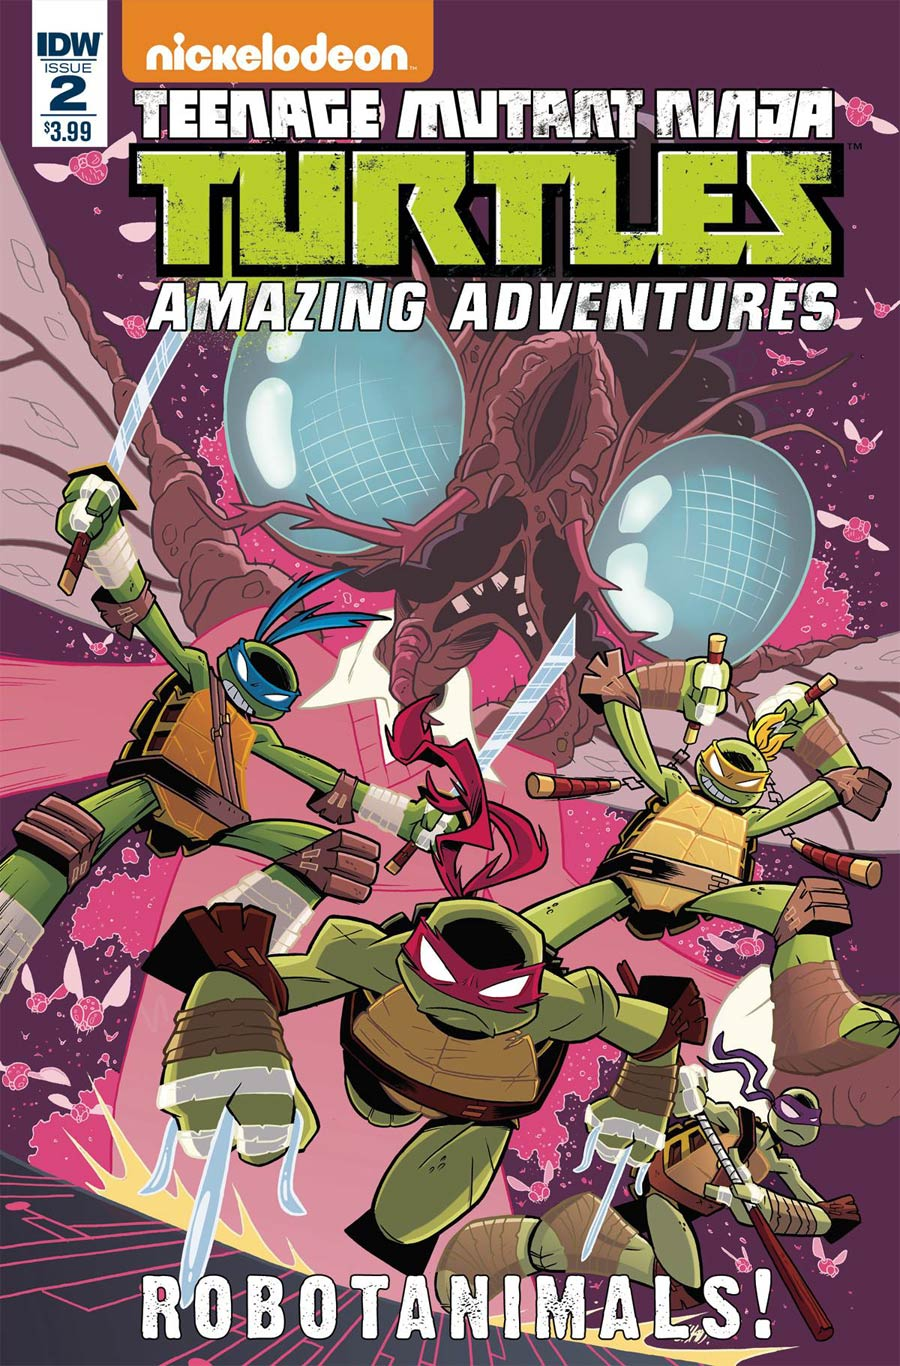 Teenage Mutant Ninja Turtles Amazing Adventures Robotanimals #2 Cover A Regular Chad Thomas Cover